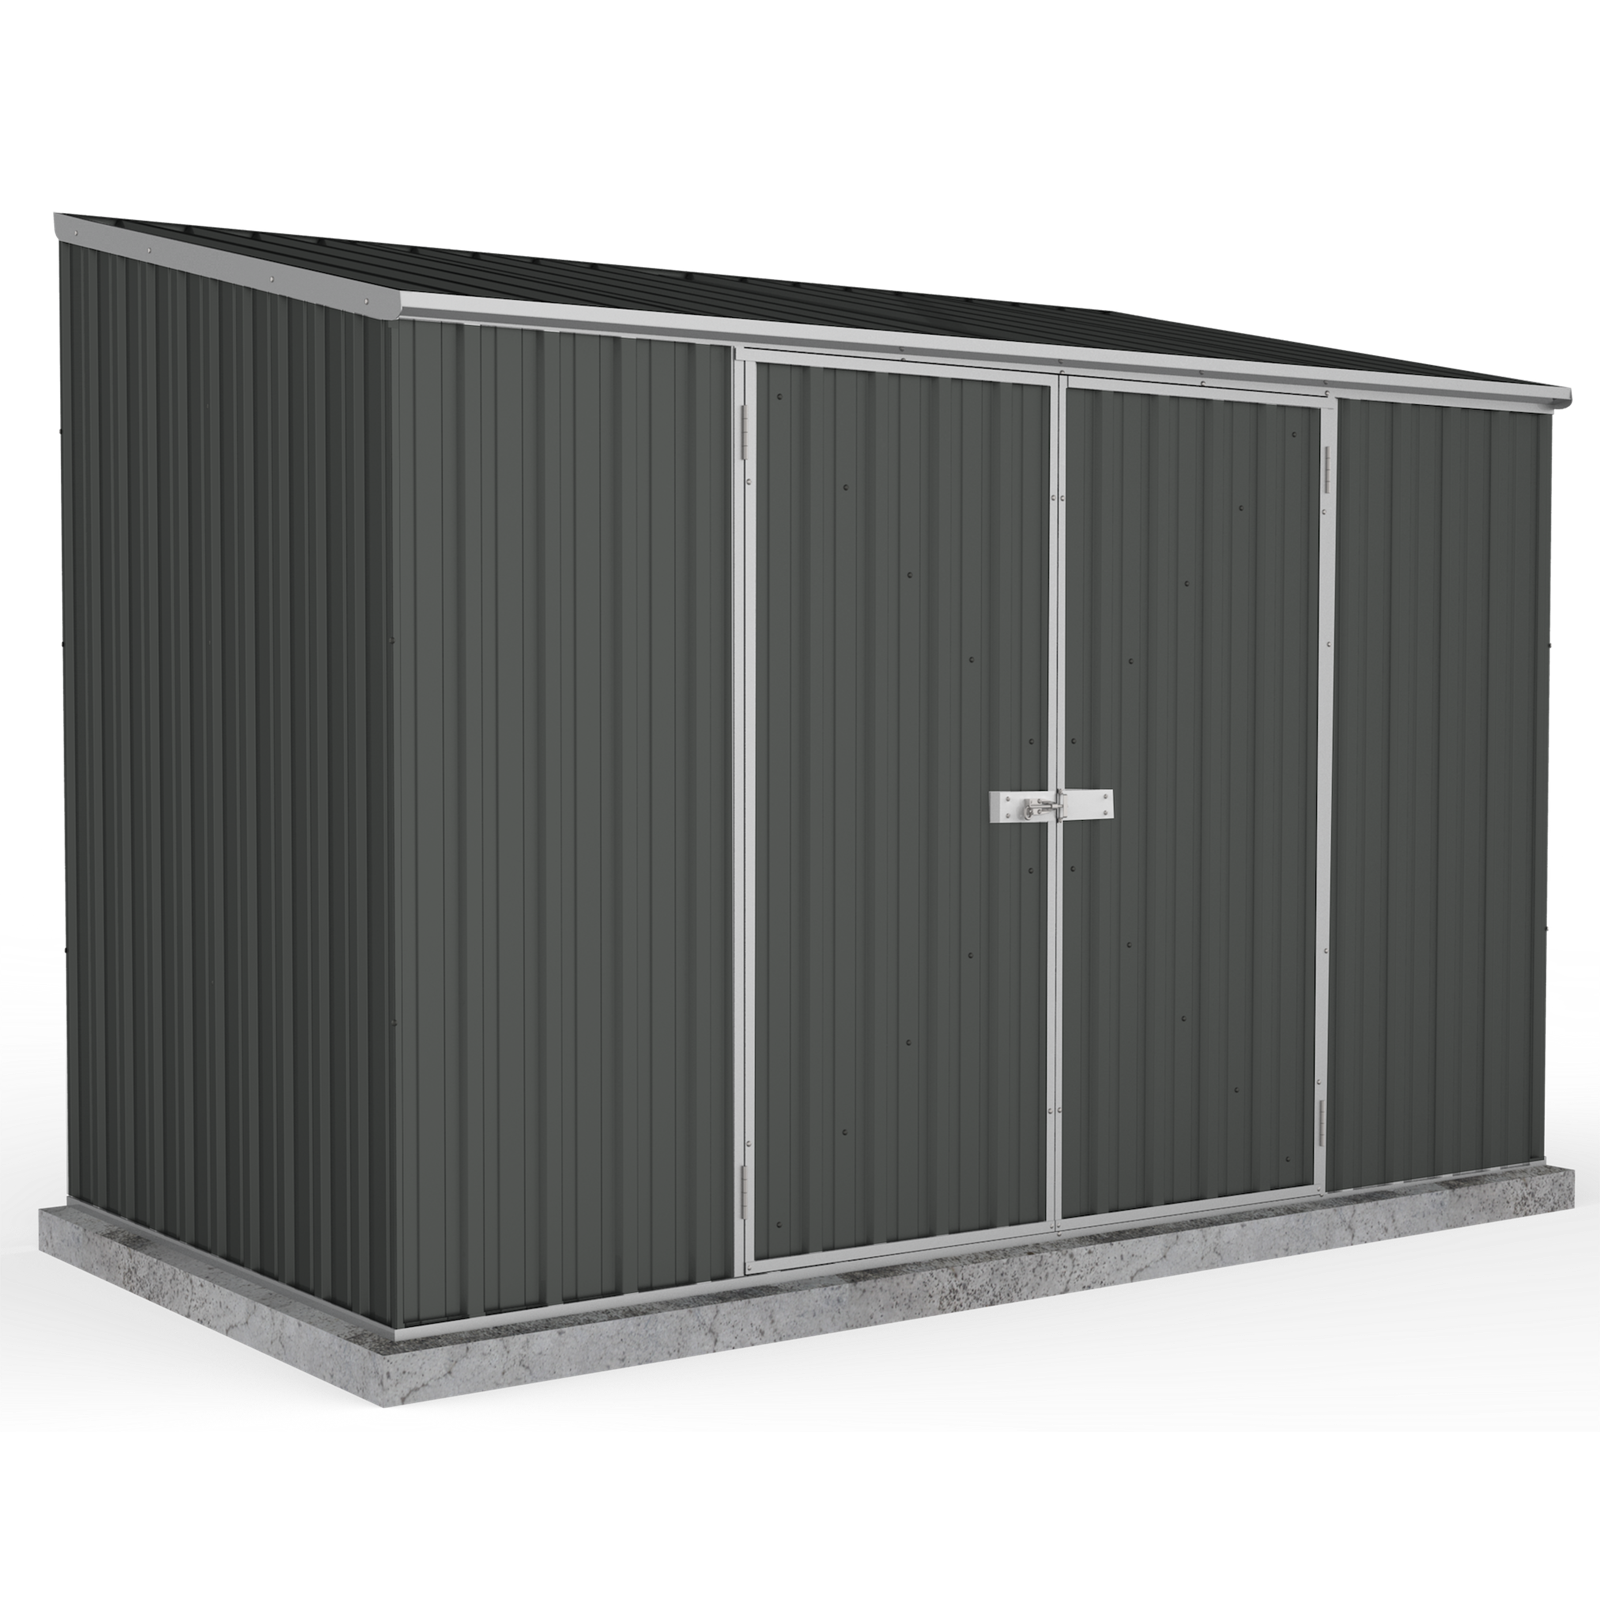 Absco Sheds 3.00 x 1.52 x 2.08m Space Saver Double Door Shed - Monument